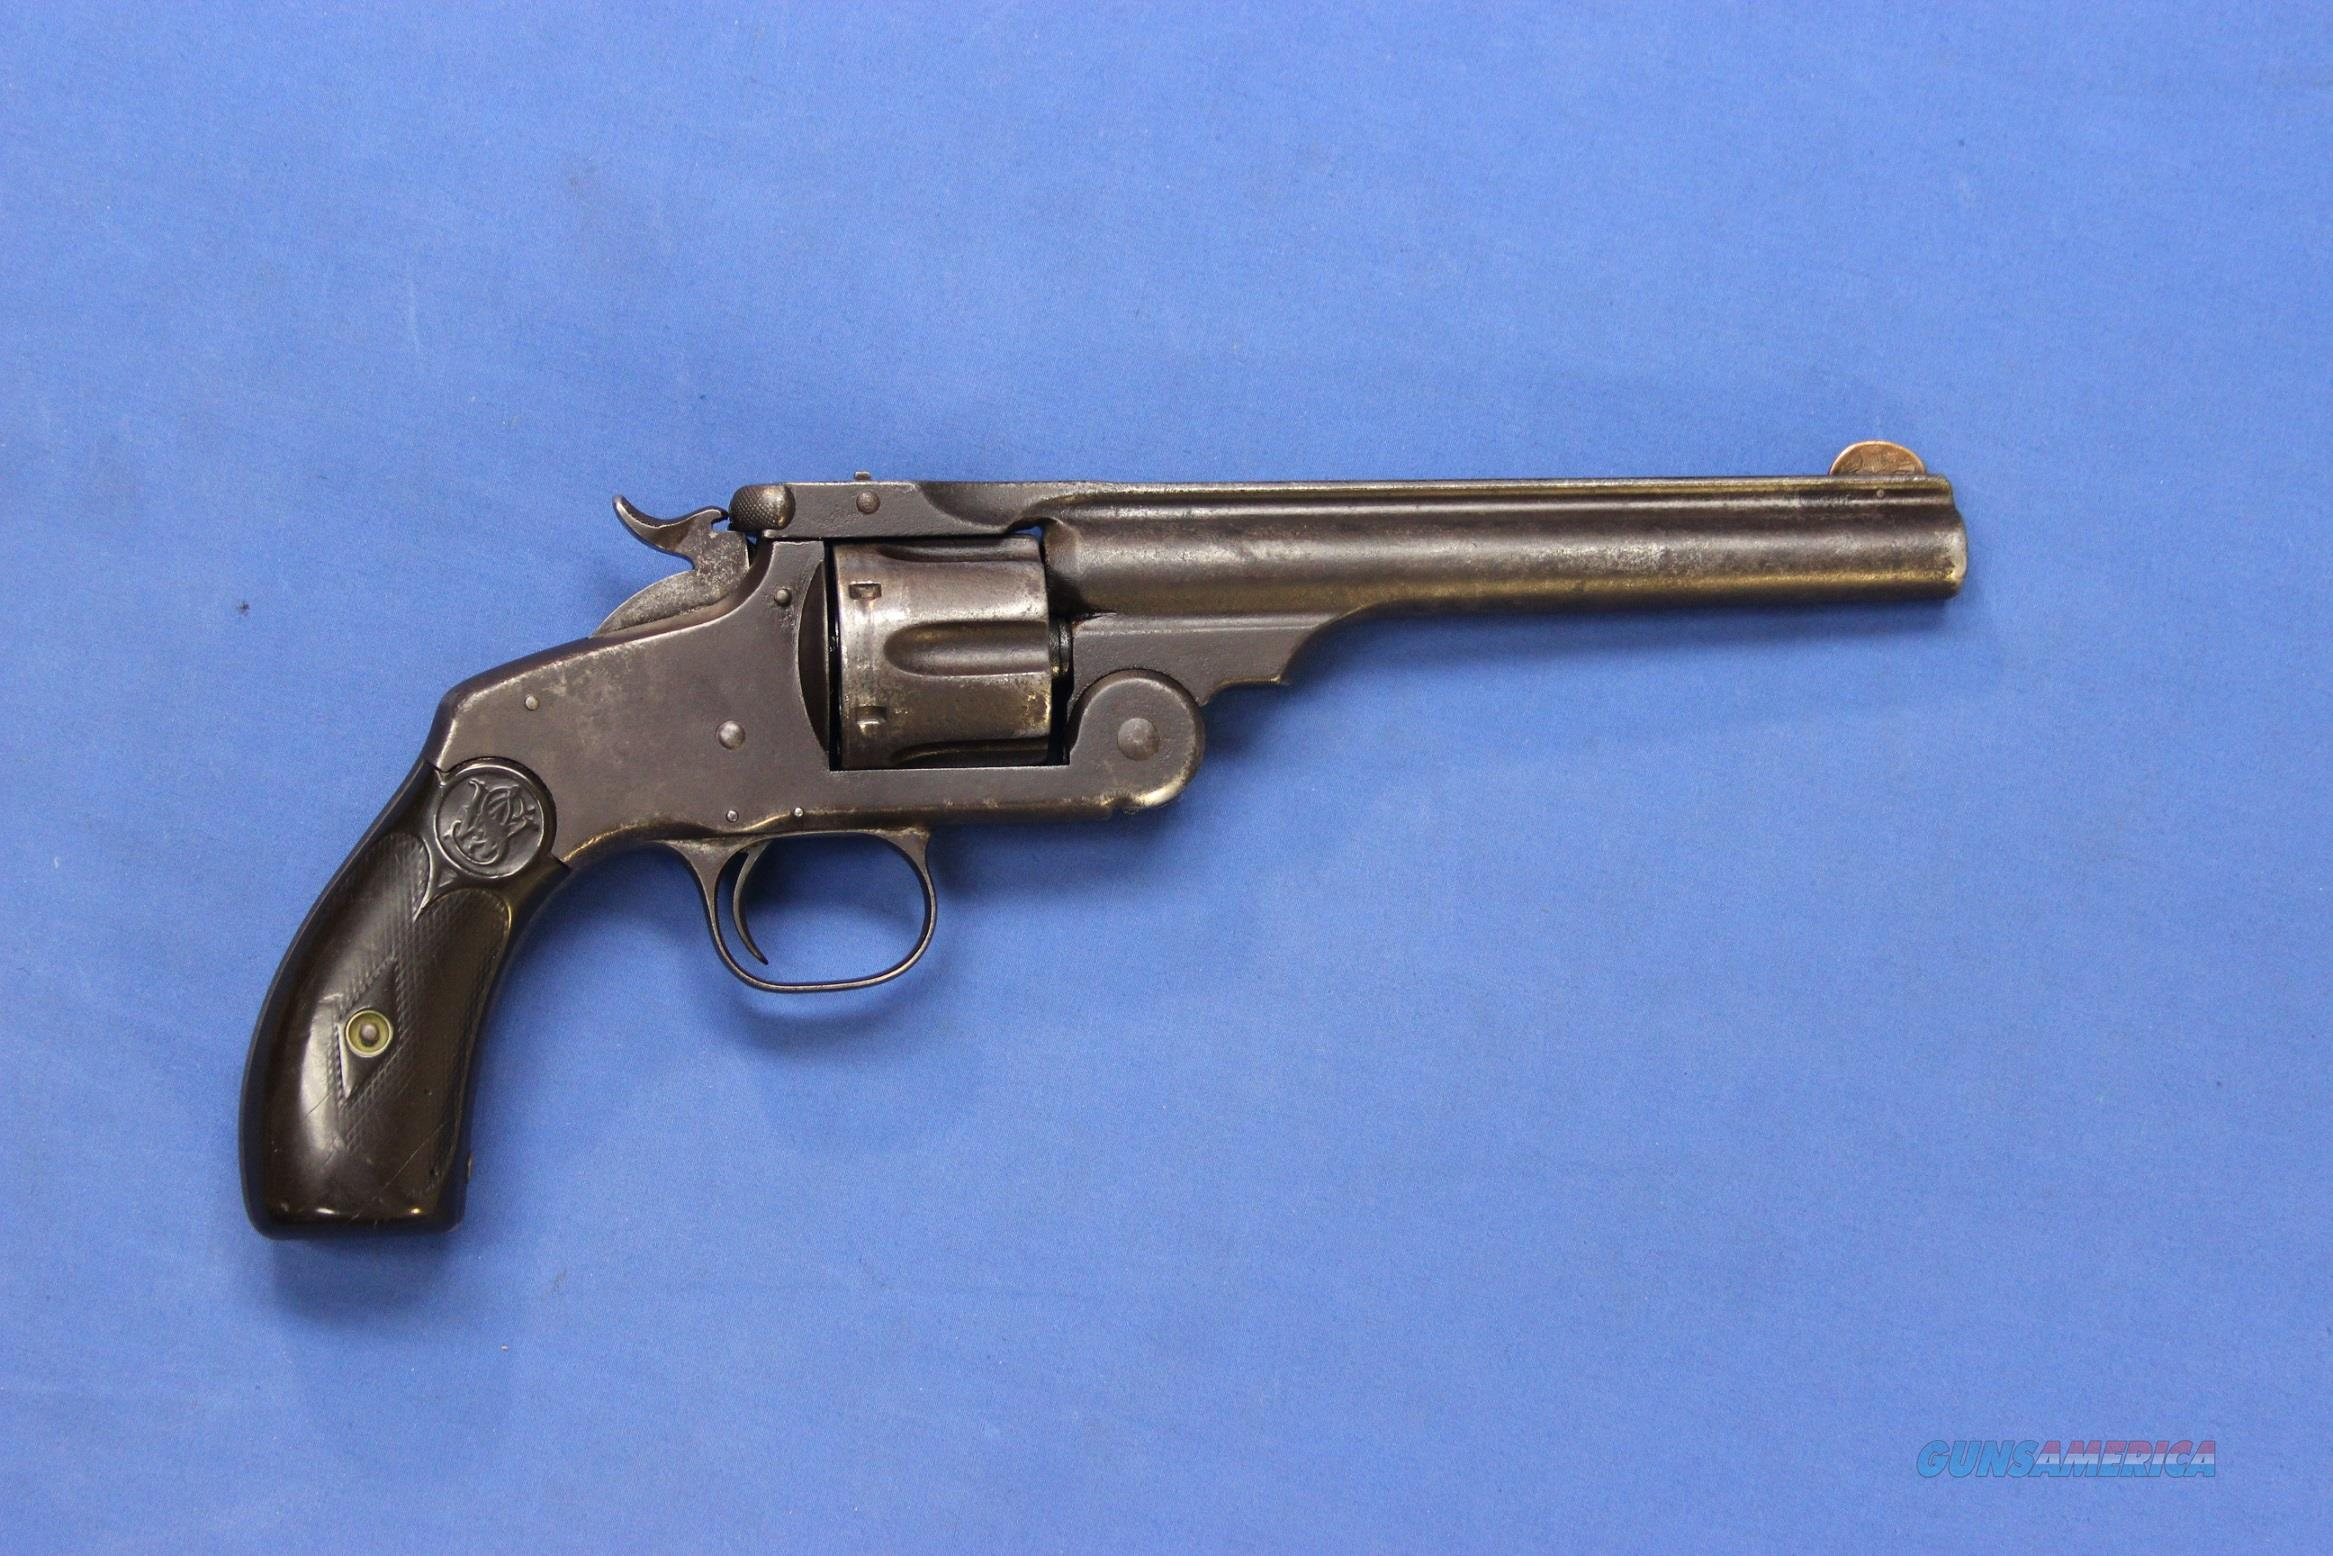 EARLY SMITH & WESSON NEW MODEL #3 .44 RUSSIAN  Guns > Pistols > Smith & Wesson Revolvers > Pre-1899